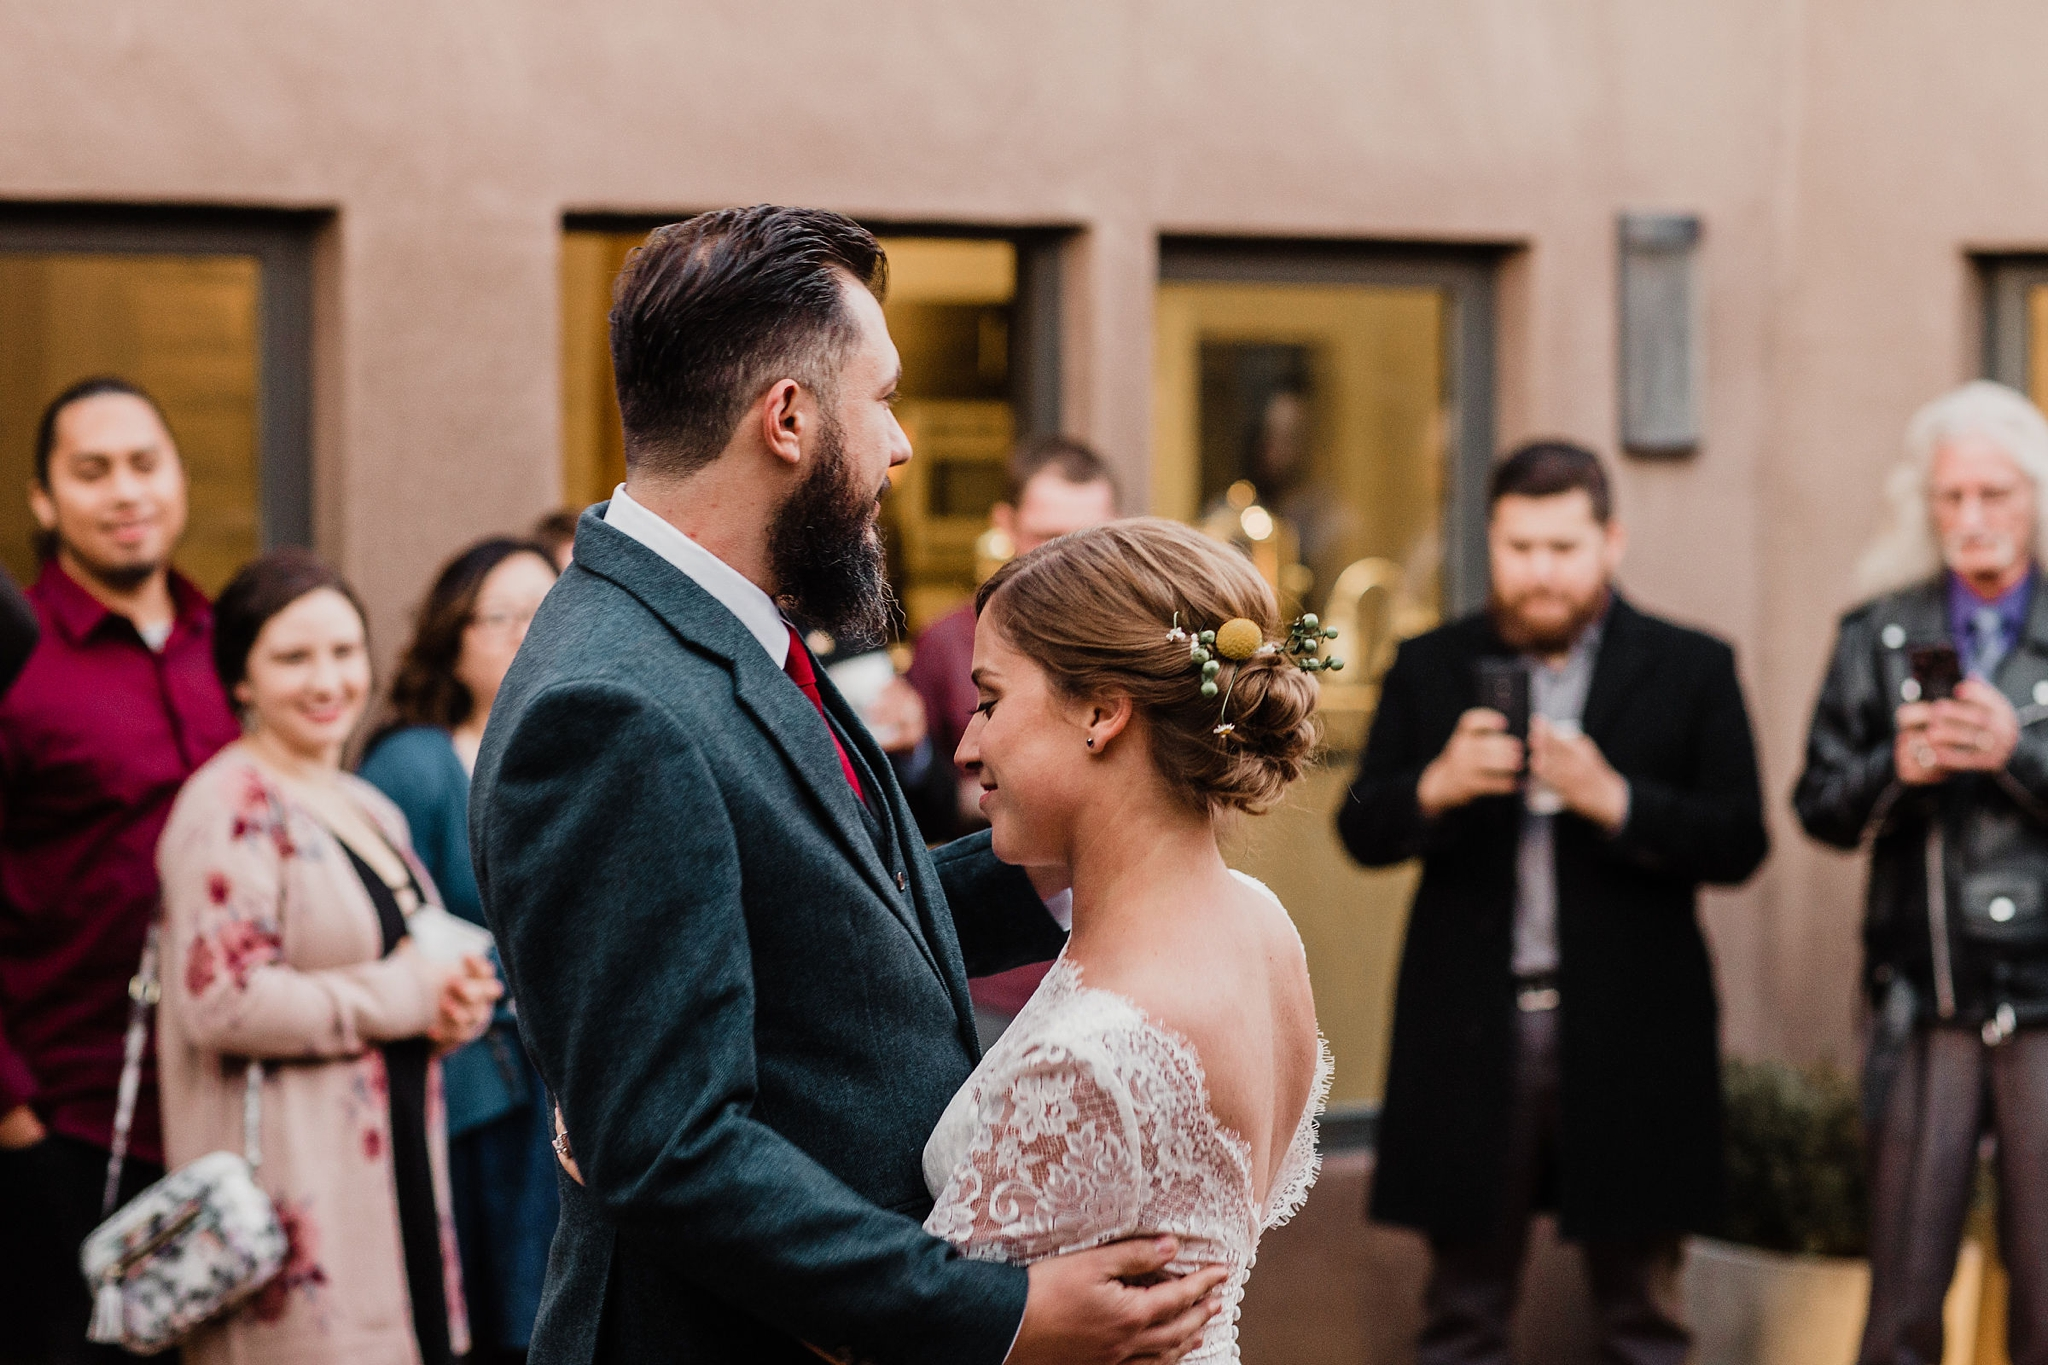 Alicia+lucia+photography+-+albuquerque+wedding+photographer+-+santa+fe+wedding+photography+-+new+mexico+wedding+photographer+-+albuquerque+wedding+-+sarabande+bed+breakfast+-+bed+and+breakfast+wedding_0109.jpg